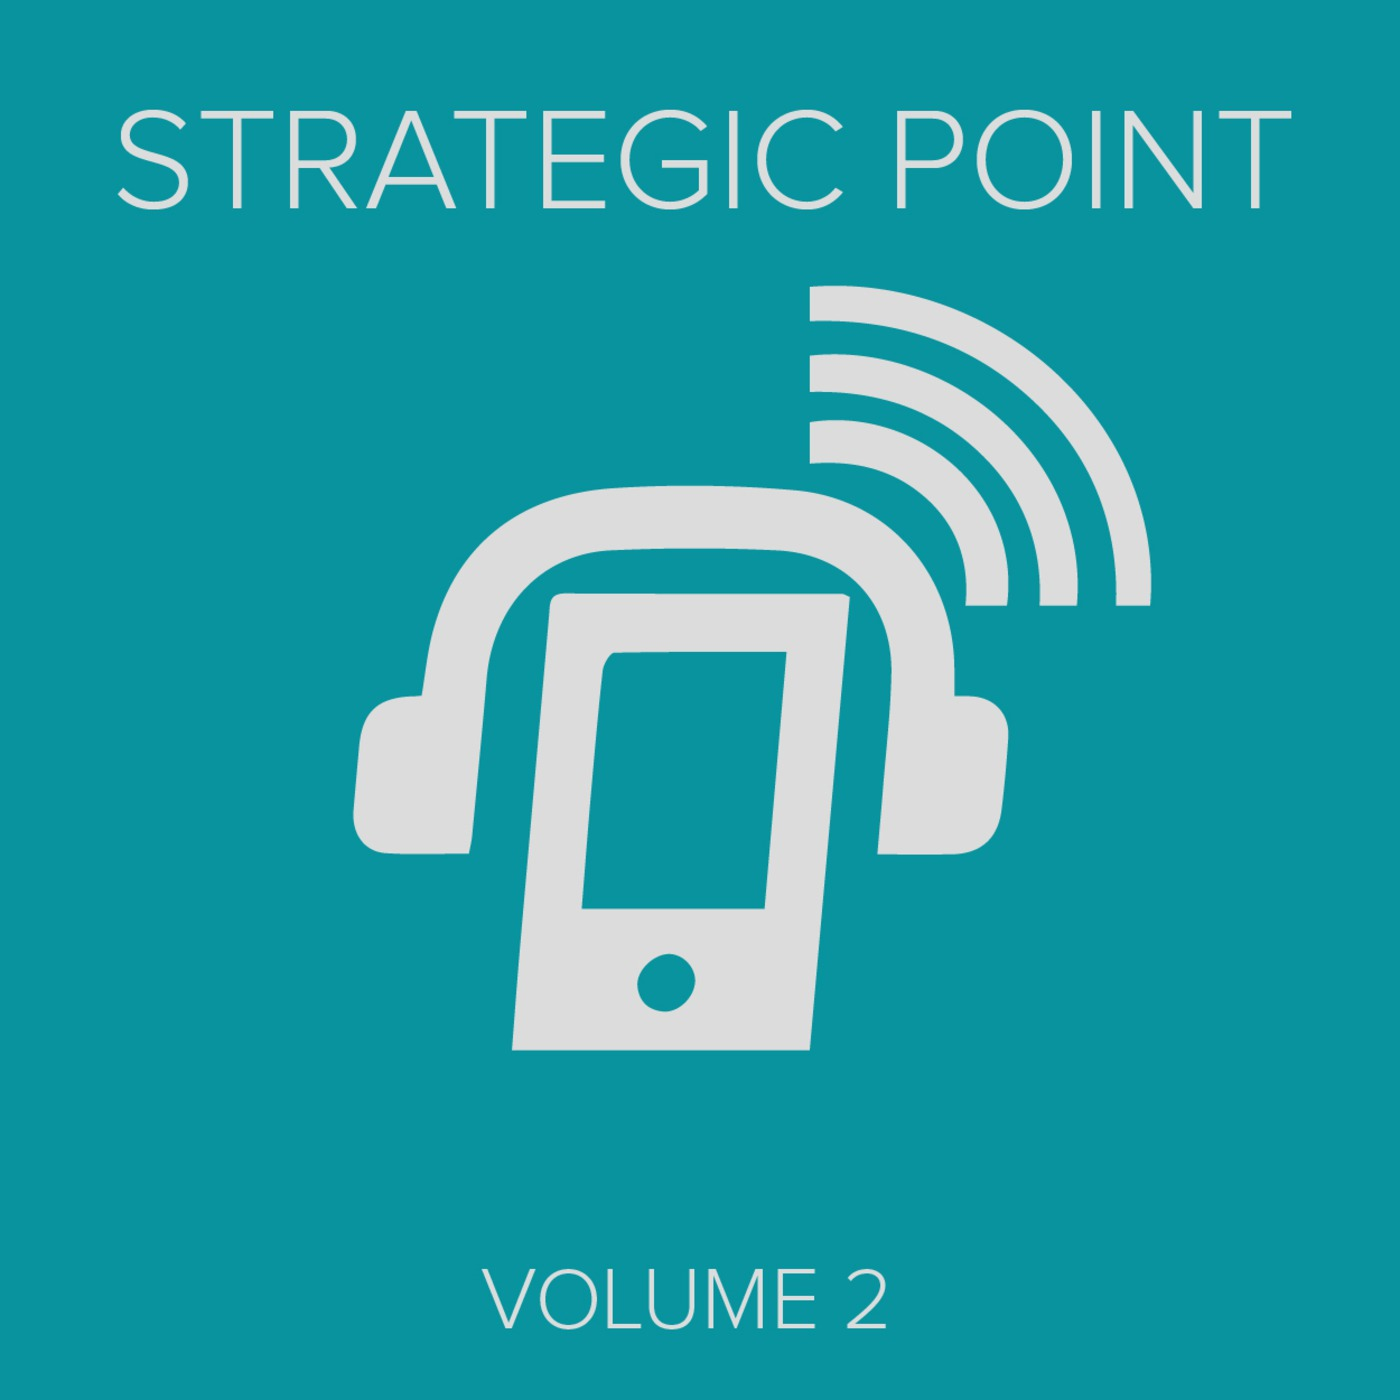 Strategic Point Marketing (Vol. 2)